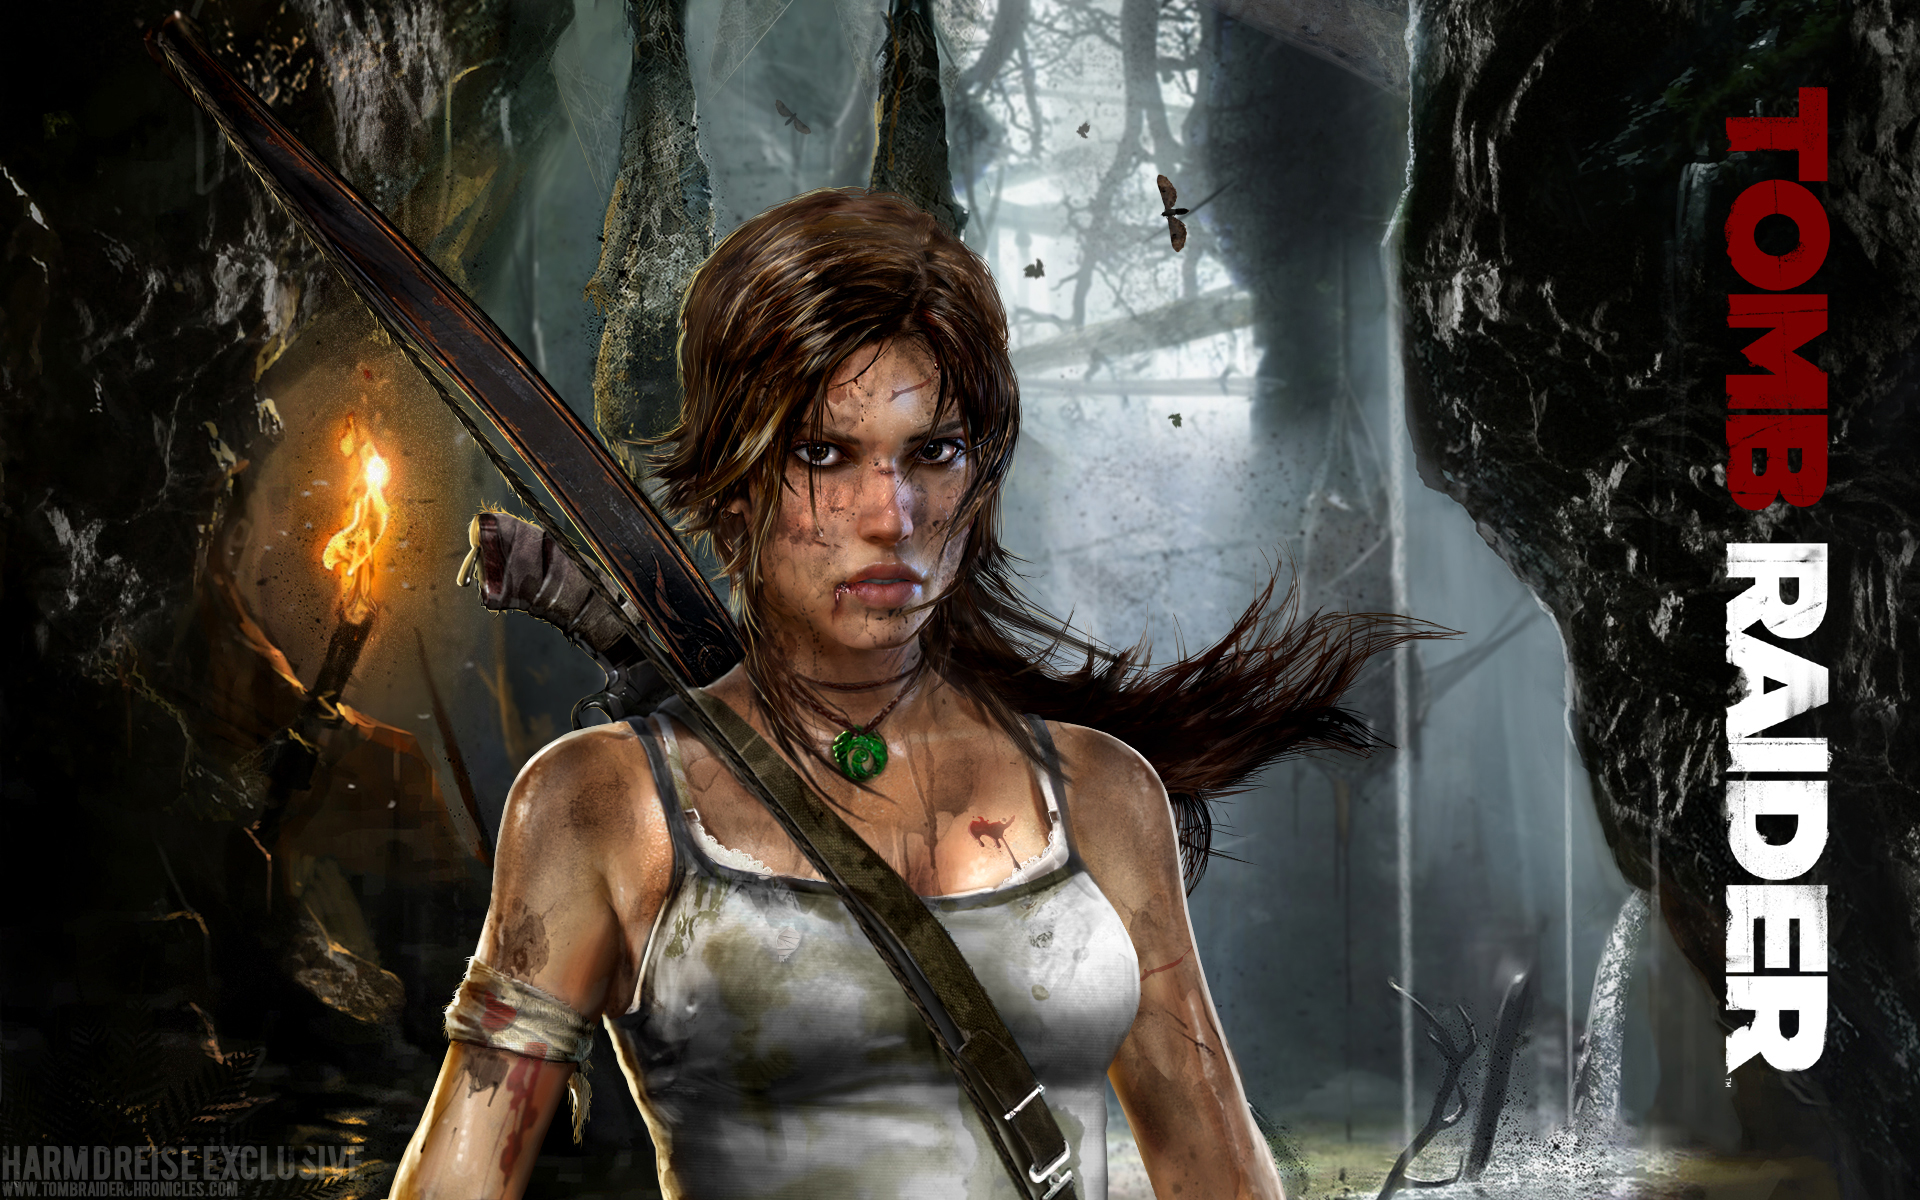 ... traditional Lara Croft titles and ventures into a more mature realm.